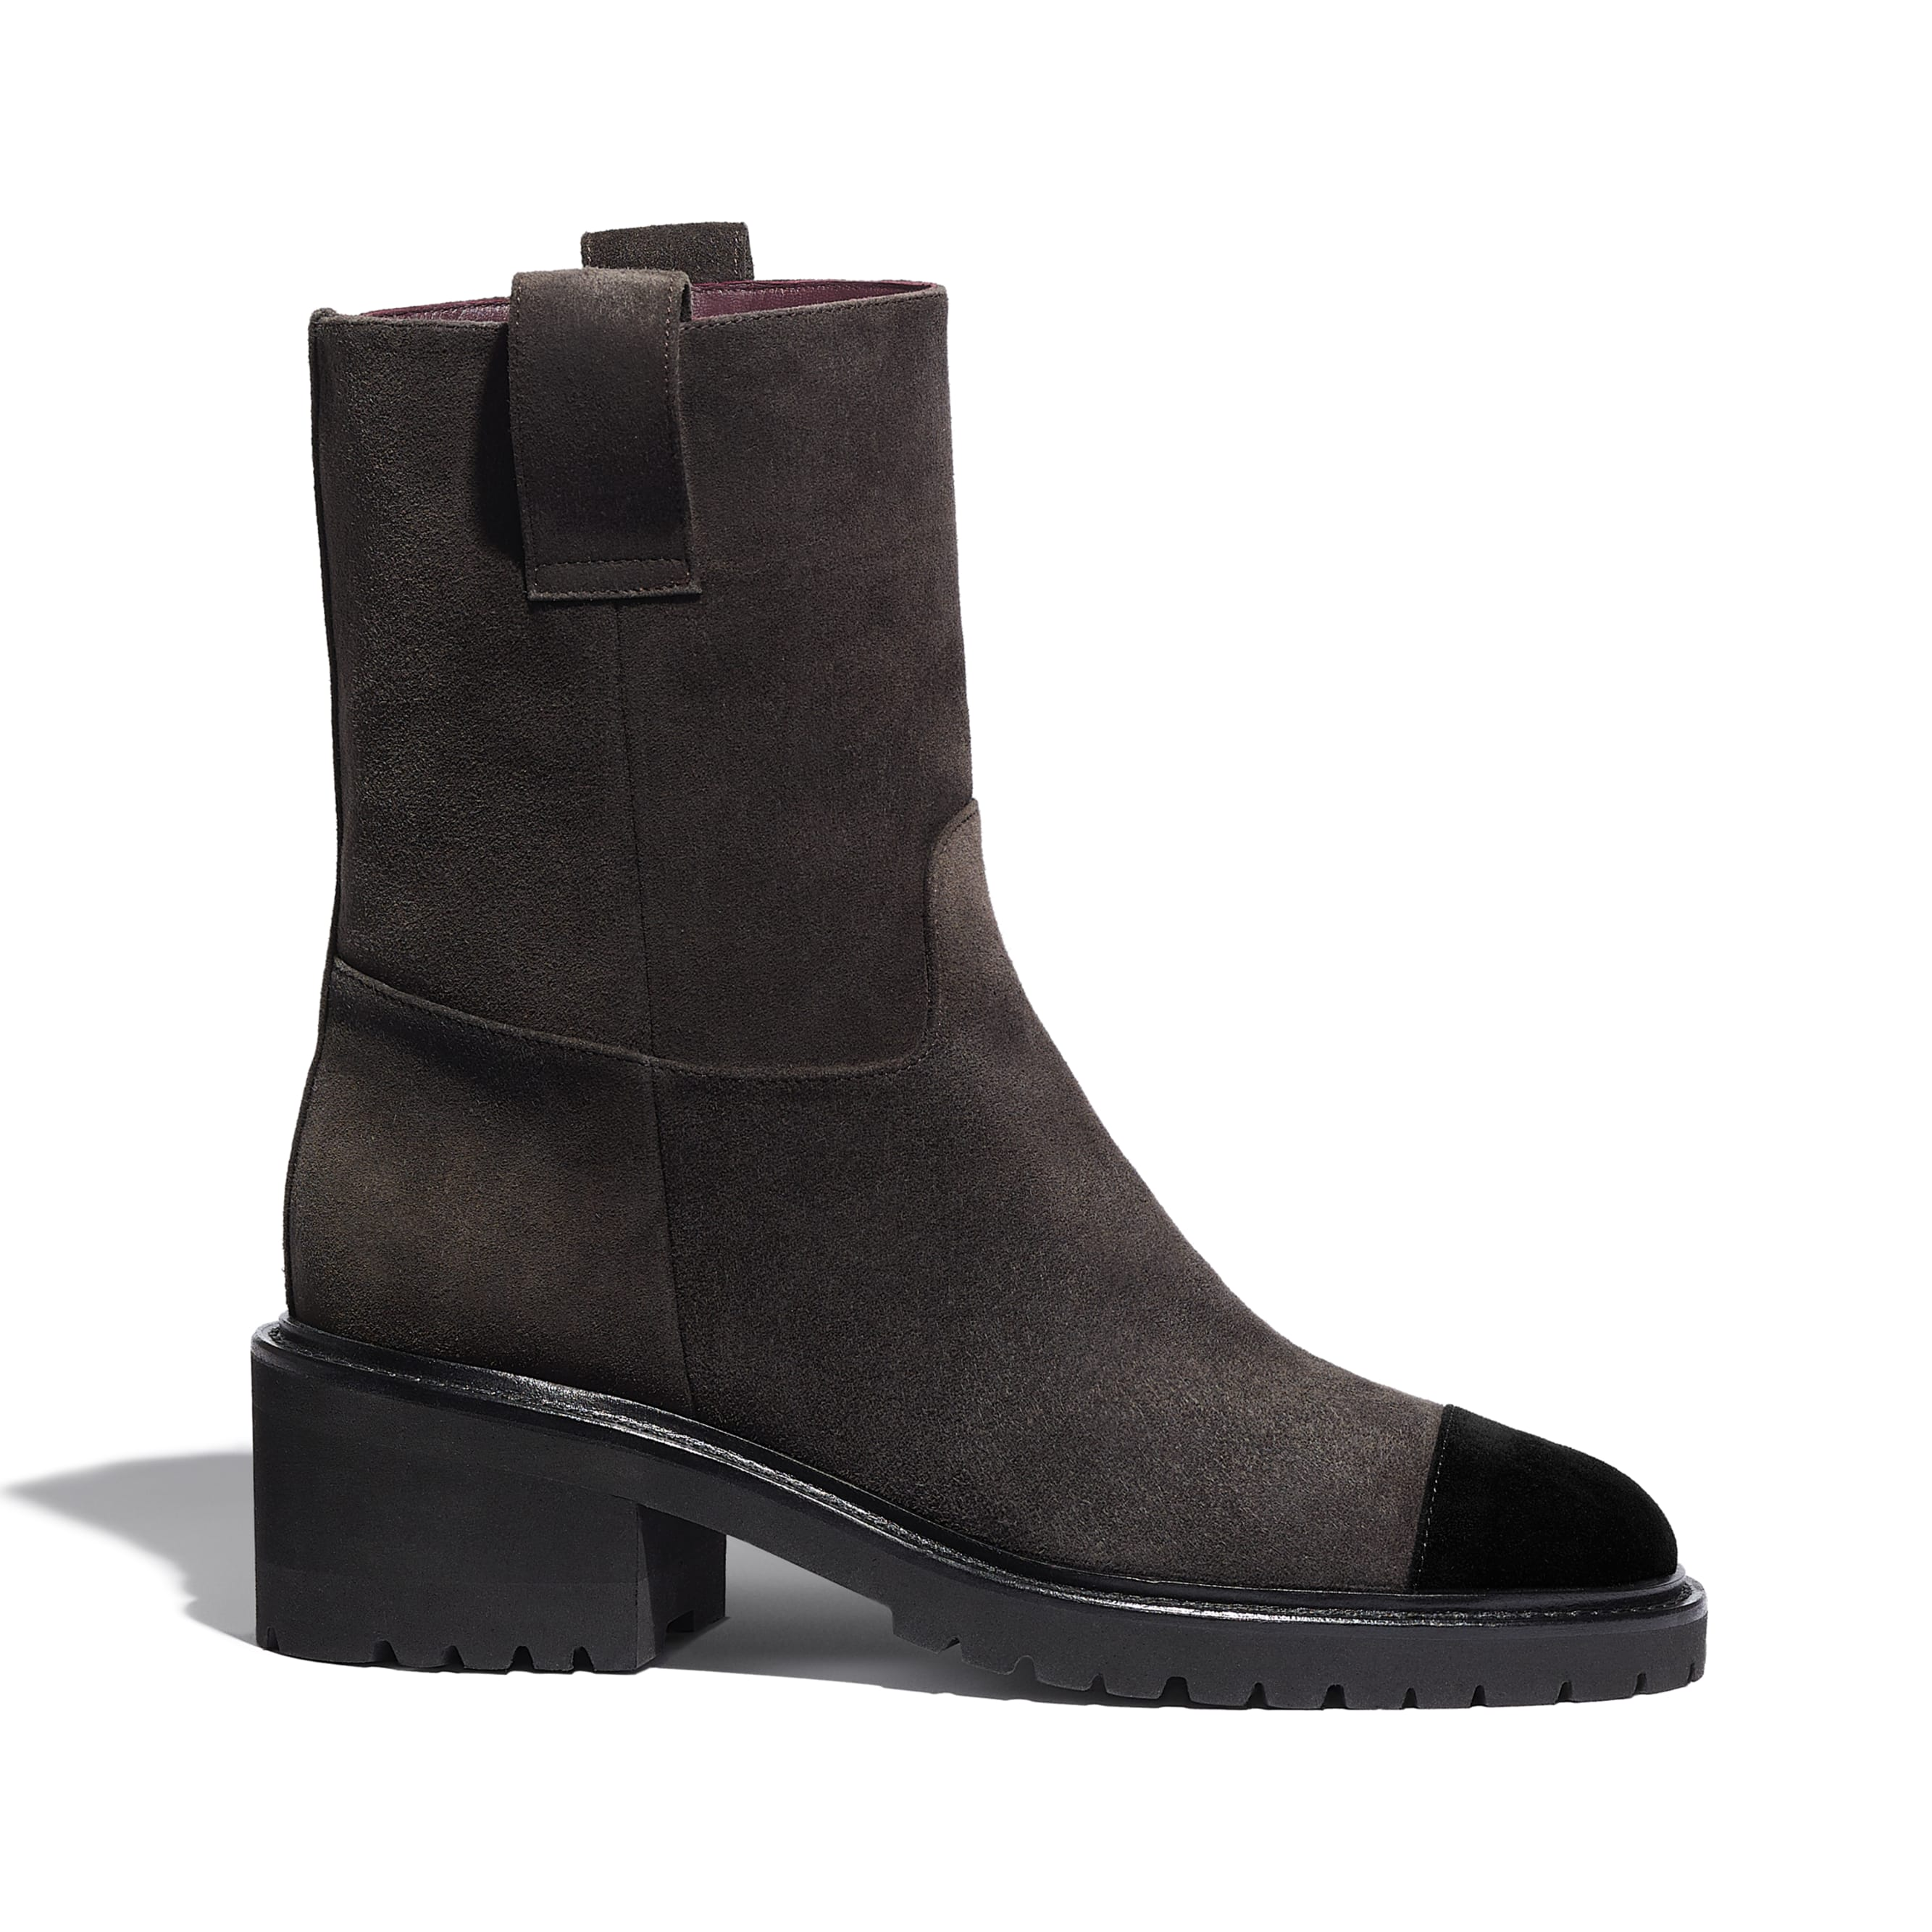 Ankle Boots - Brown & Black - Suede Calfskin - CHANEL - Default view - see standard sized version